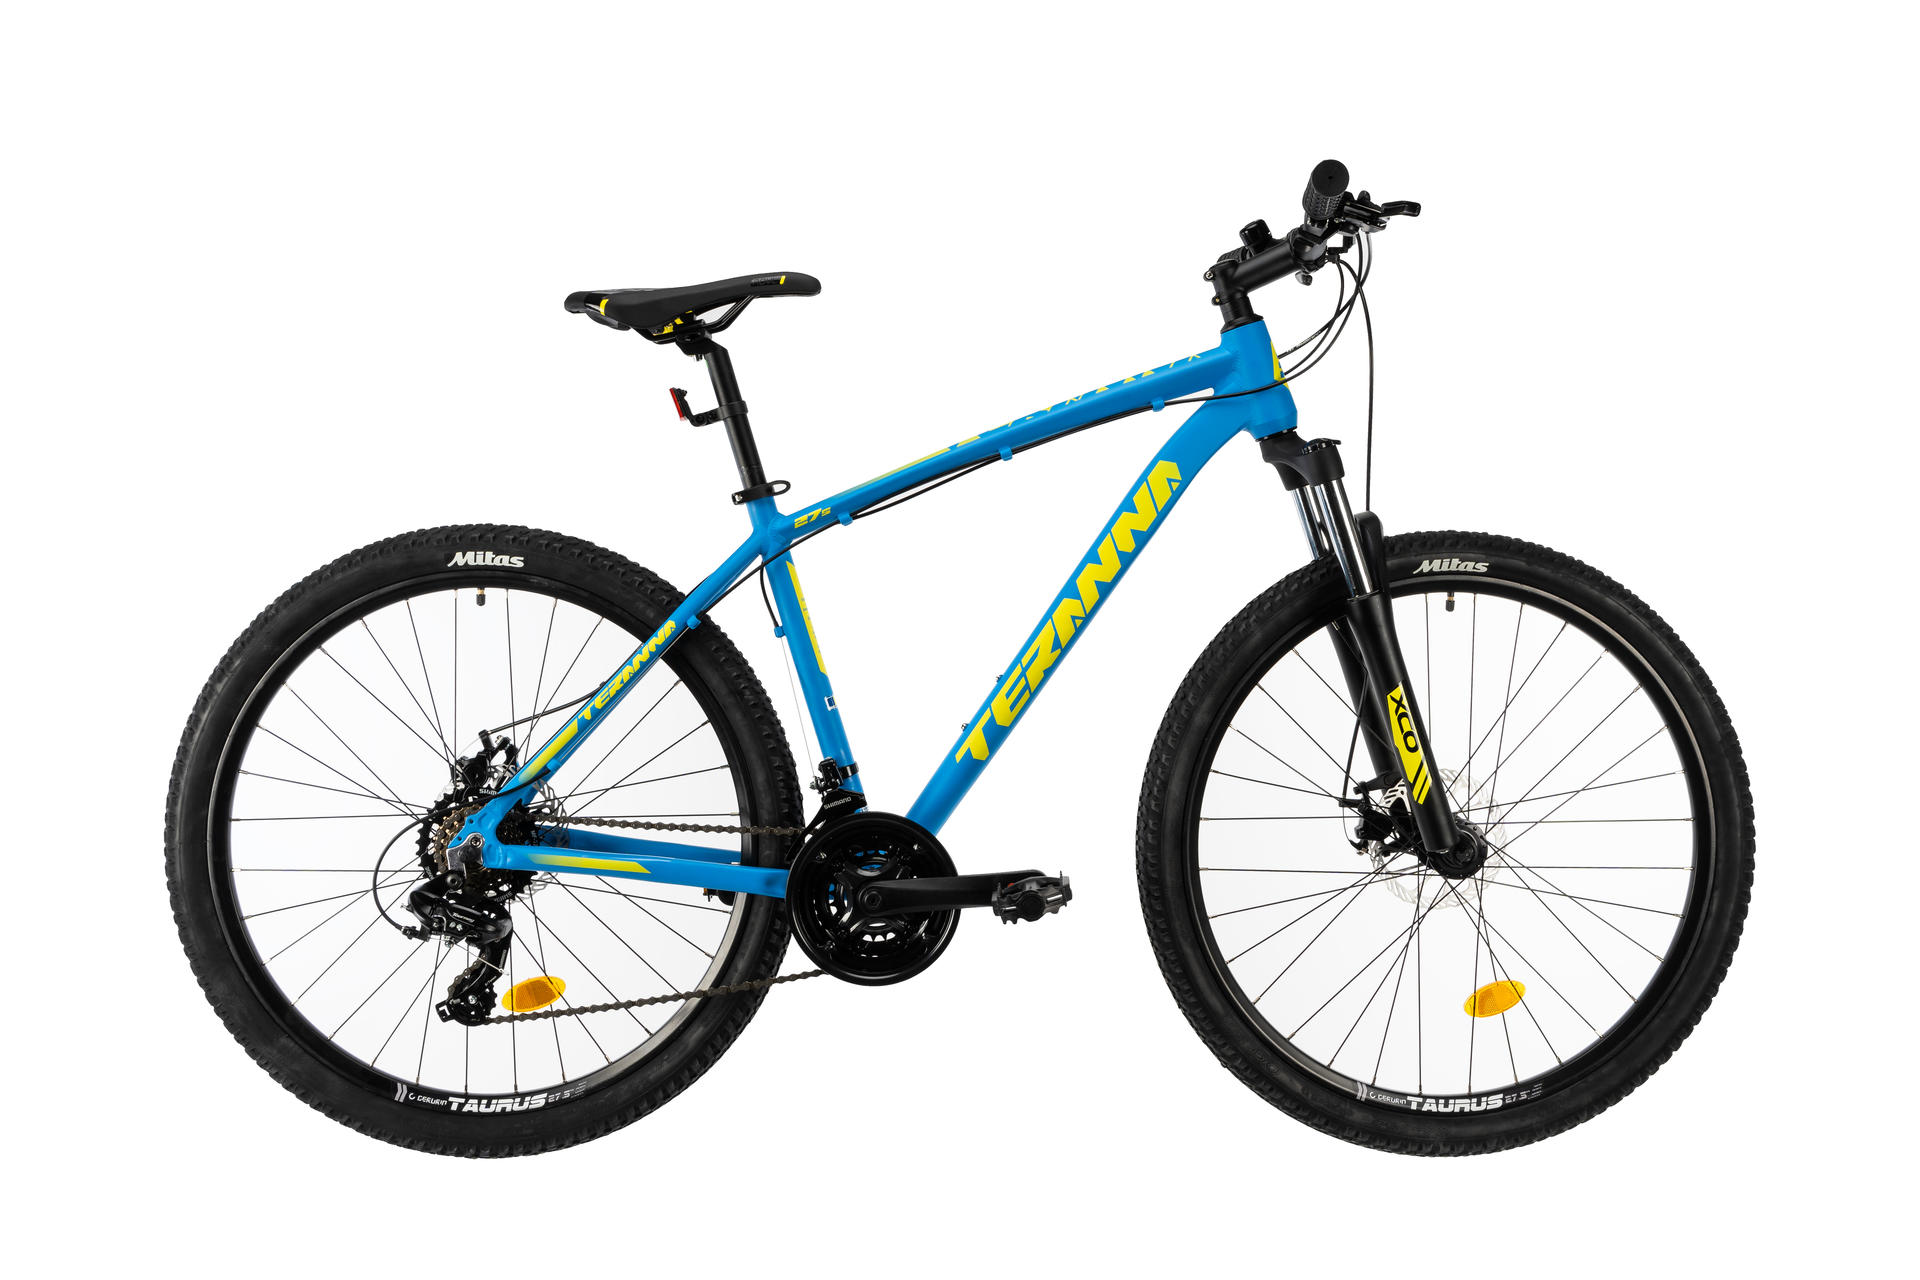 Mountain bike DHS 2725 Blue 420mm